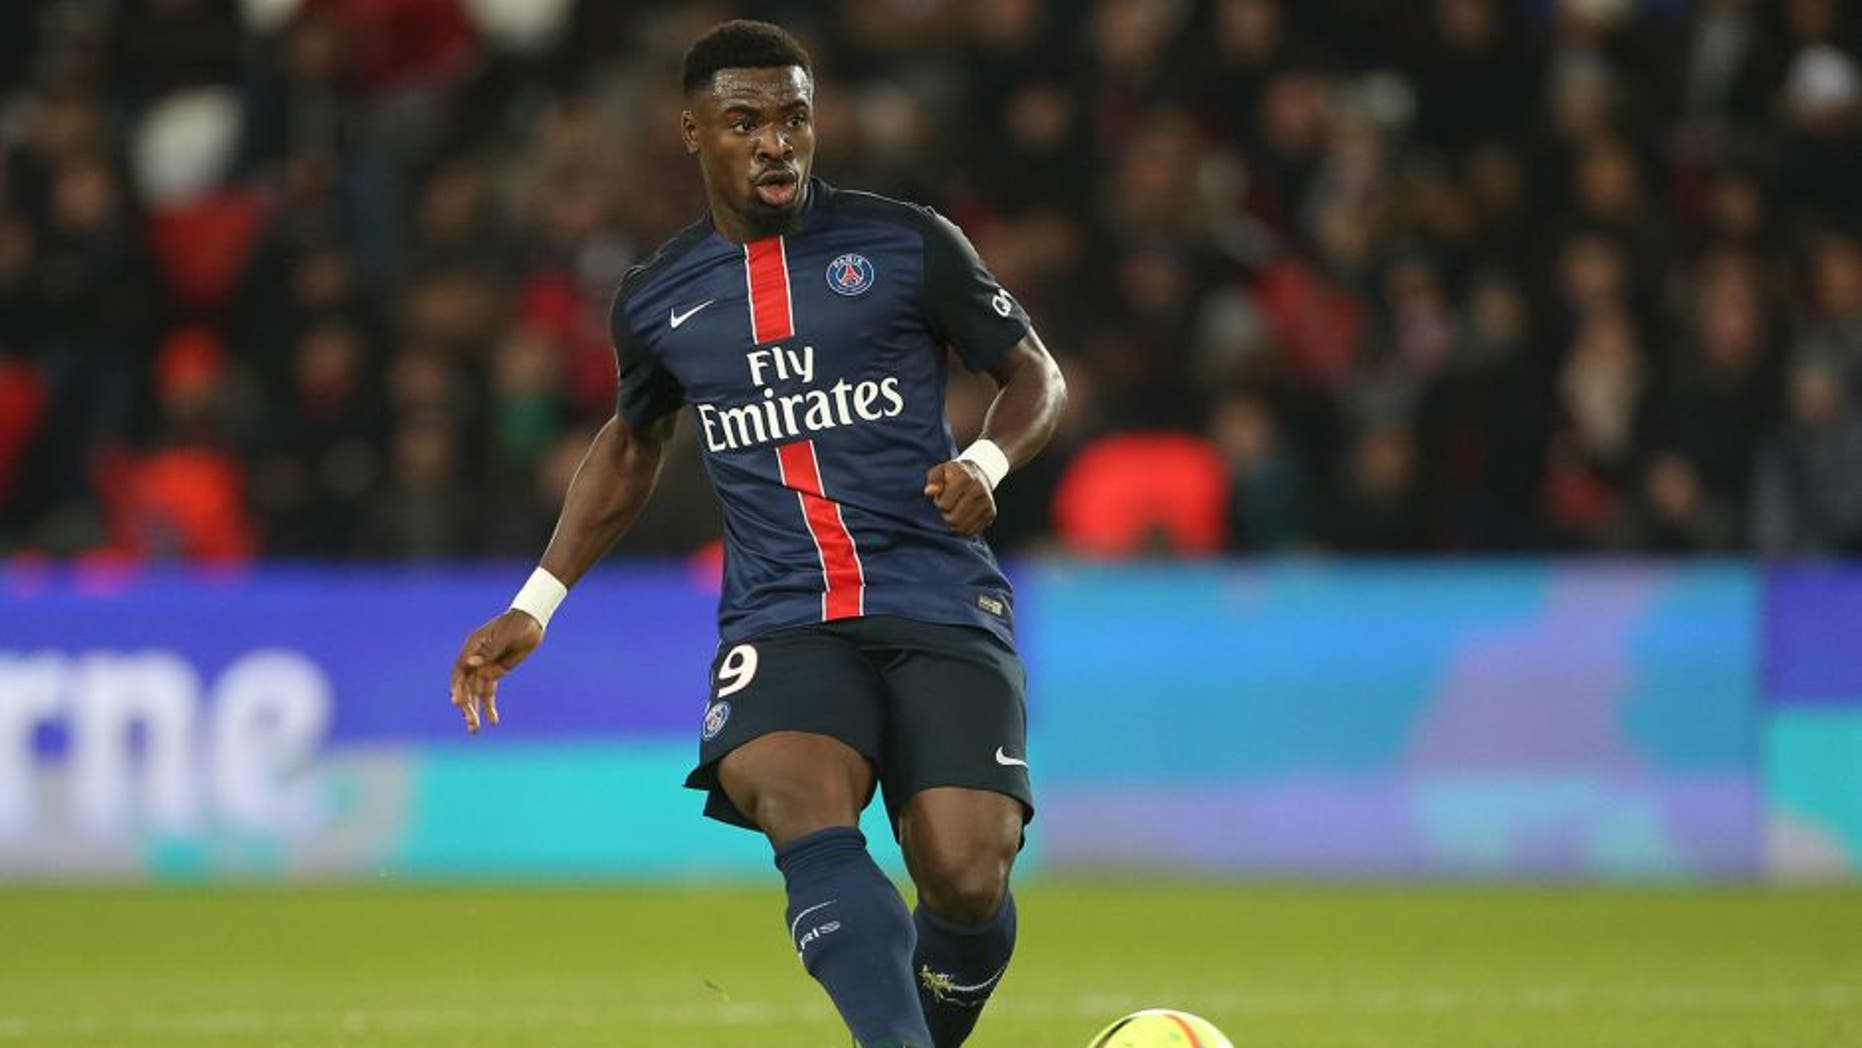 PARIS, FRANCE - JANUARY 23: Serge Aurier of PSG in action during the French Ligue 1 match between Paris Saint-Germain (PSG) and SCO Angers at Parc des Princes stadium on January 23, 2016 in Paris, France. (Photo by Jean Catuffe/Getty Images)